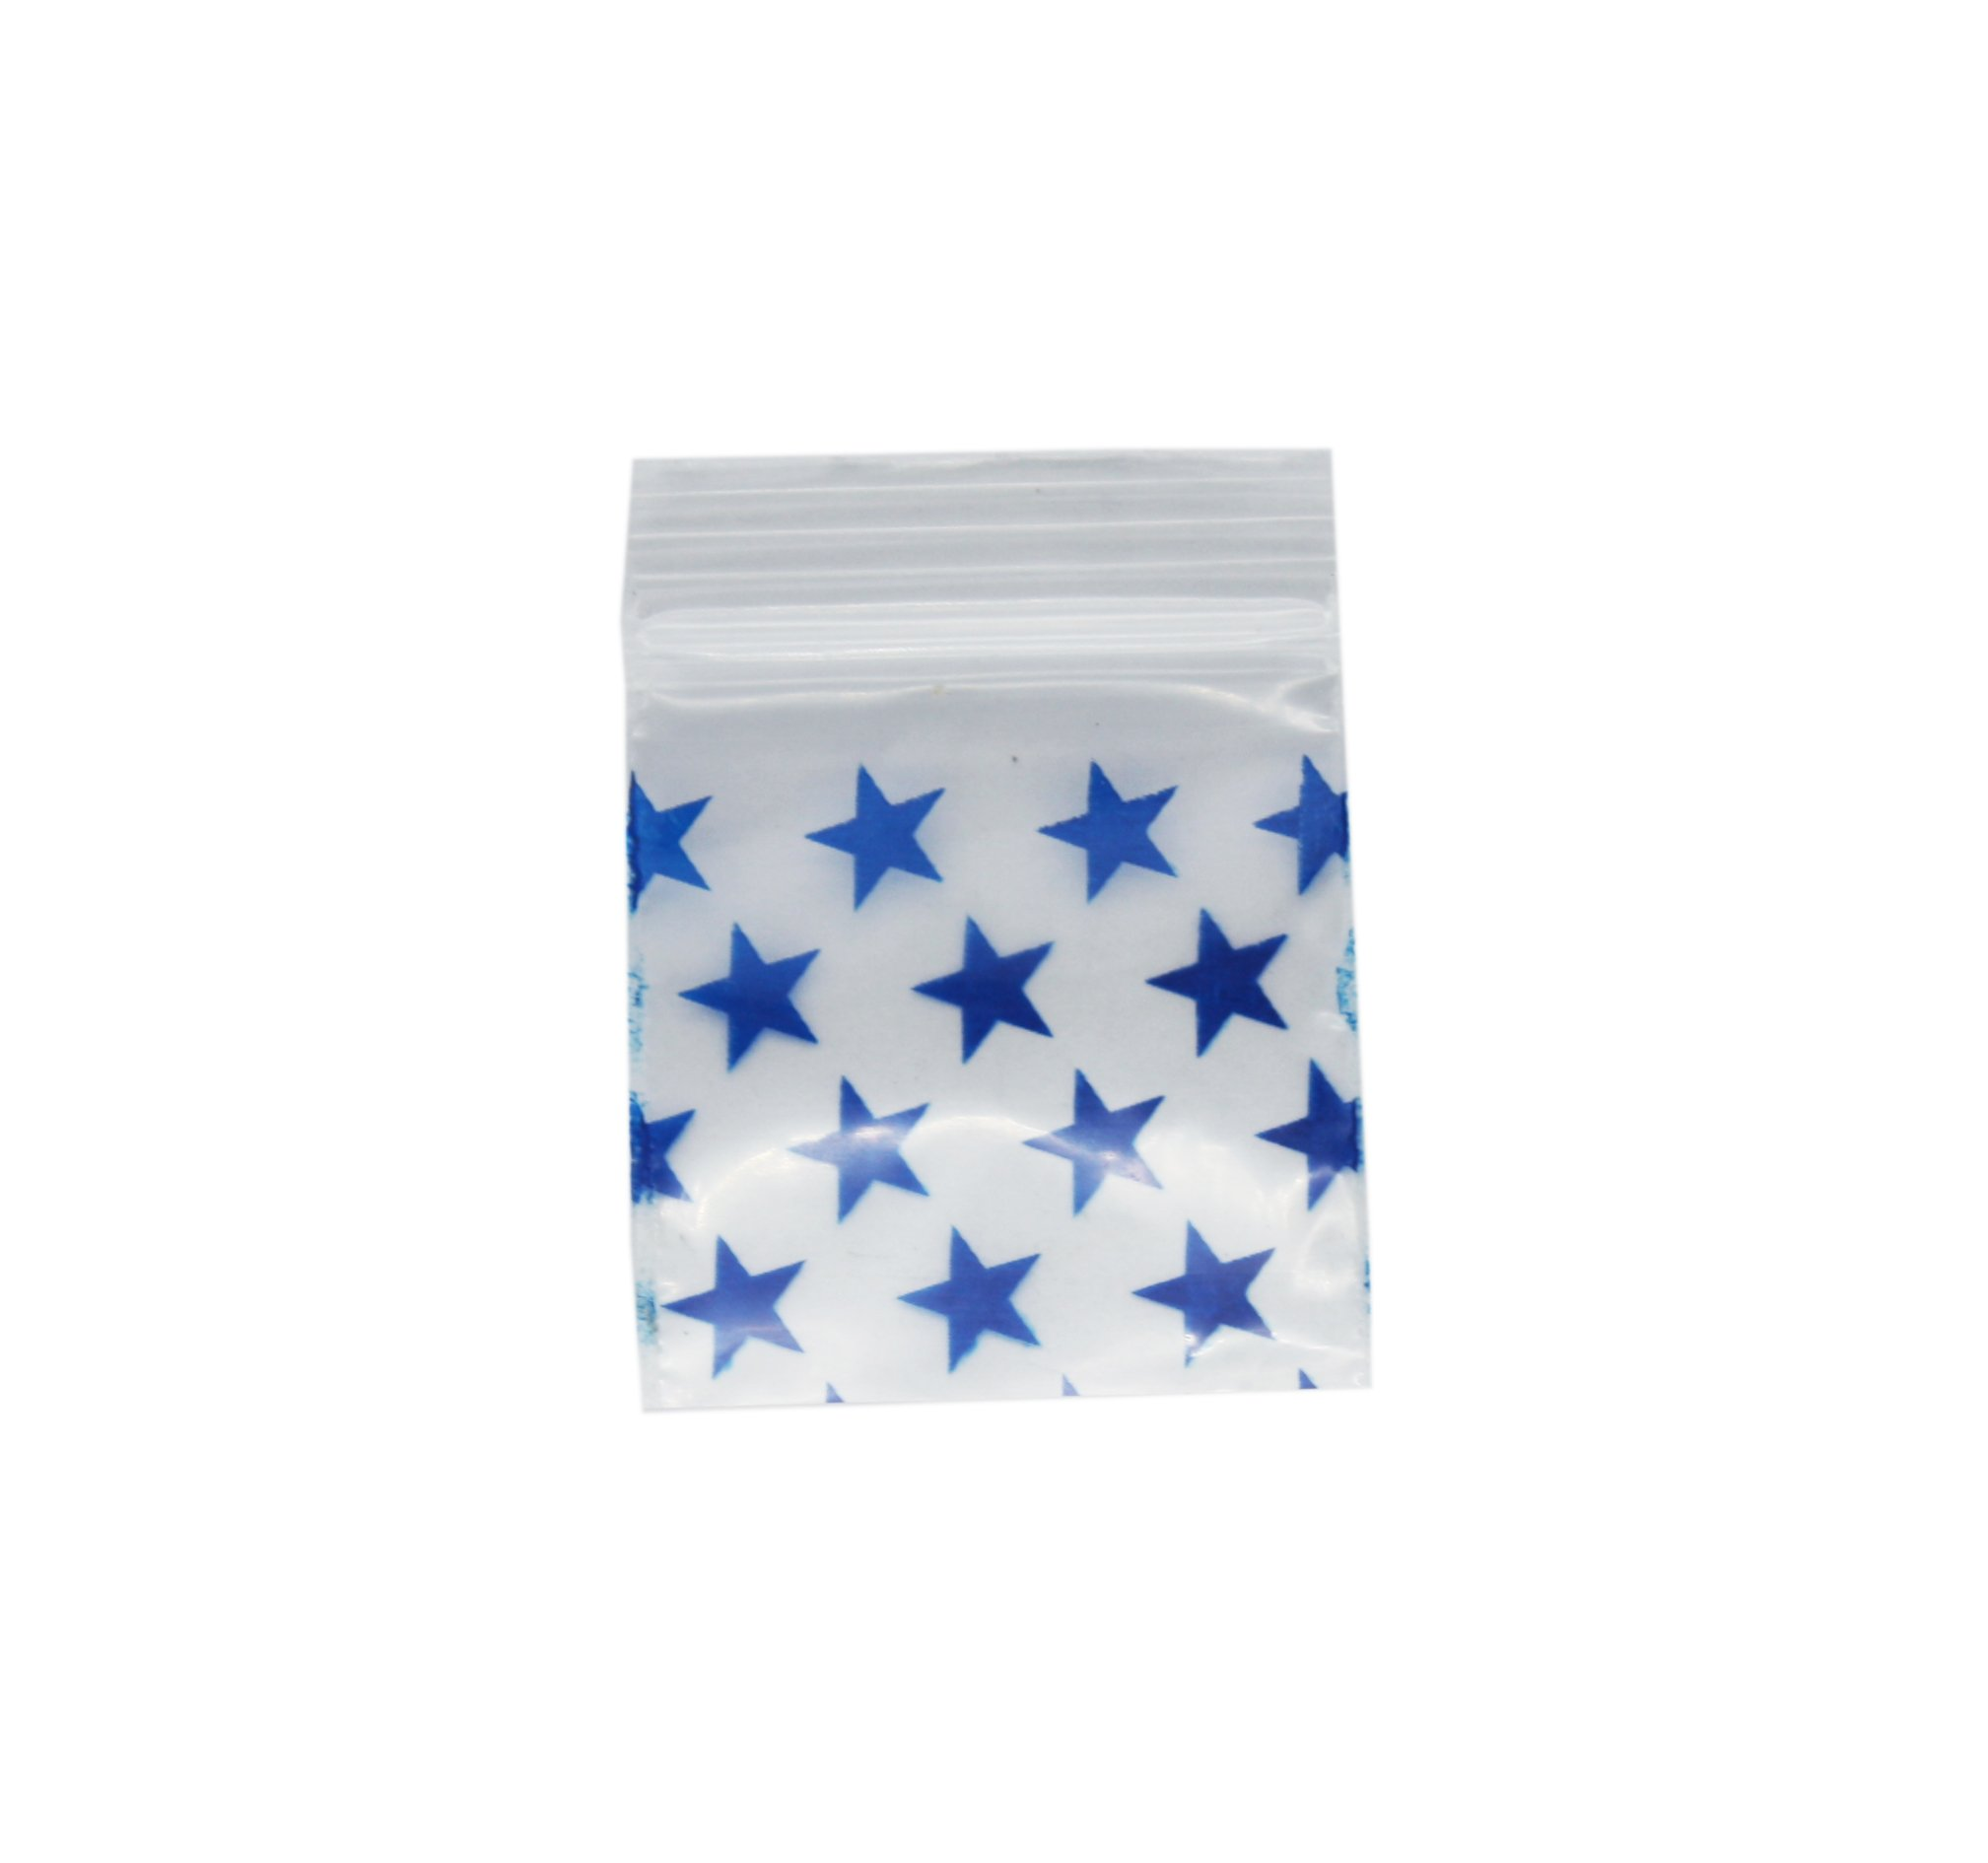 Blue Star Bag 32mm x 32mm